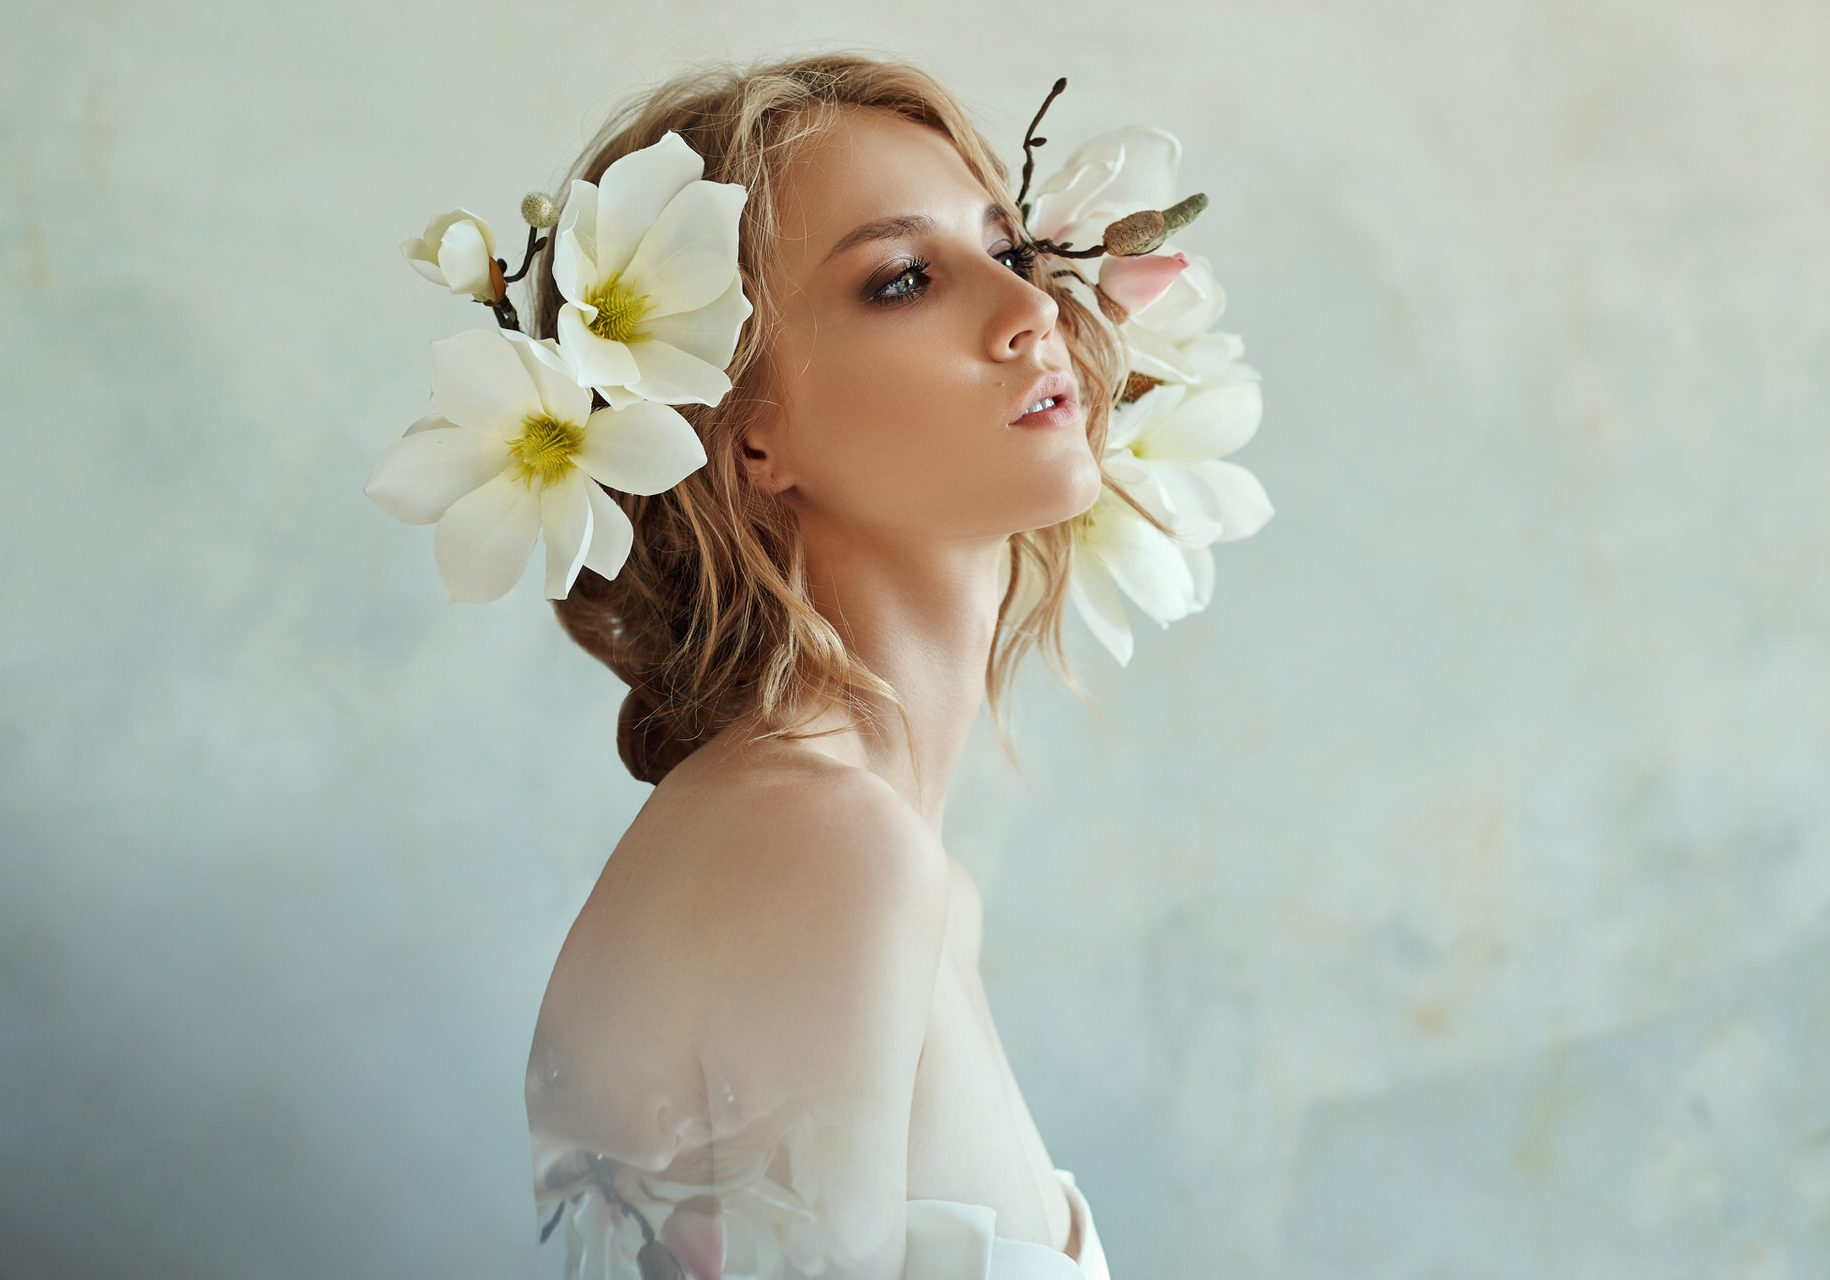 Art Girl blonde flowers near the face. Natural cosmetics for skin care, woman and natural beauty of the skin. Hydration and rejuvenation, anti-wrinkle agent